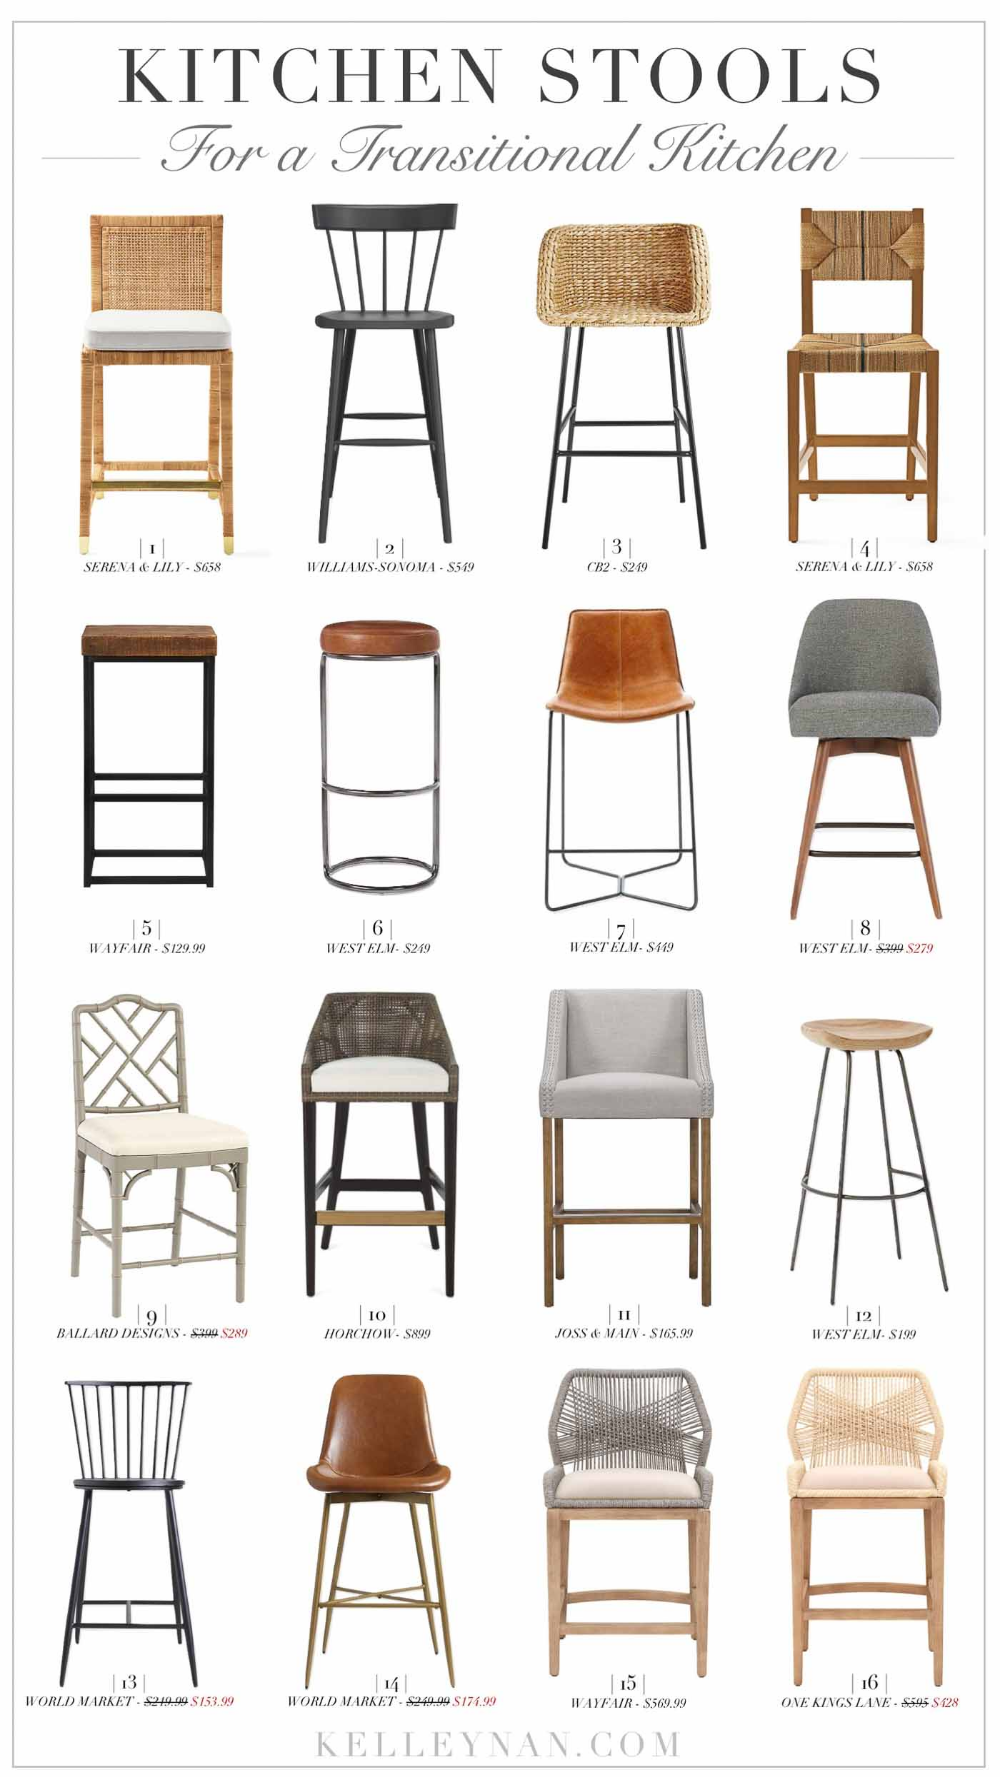 Transitional Bar Stools And Counter Height Kitchen Stools Of All Prices Kitchen Stools Stools For Kitchen Island Kitchen Bar Stools